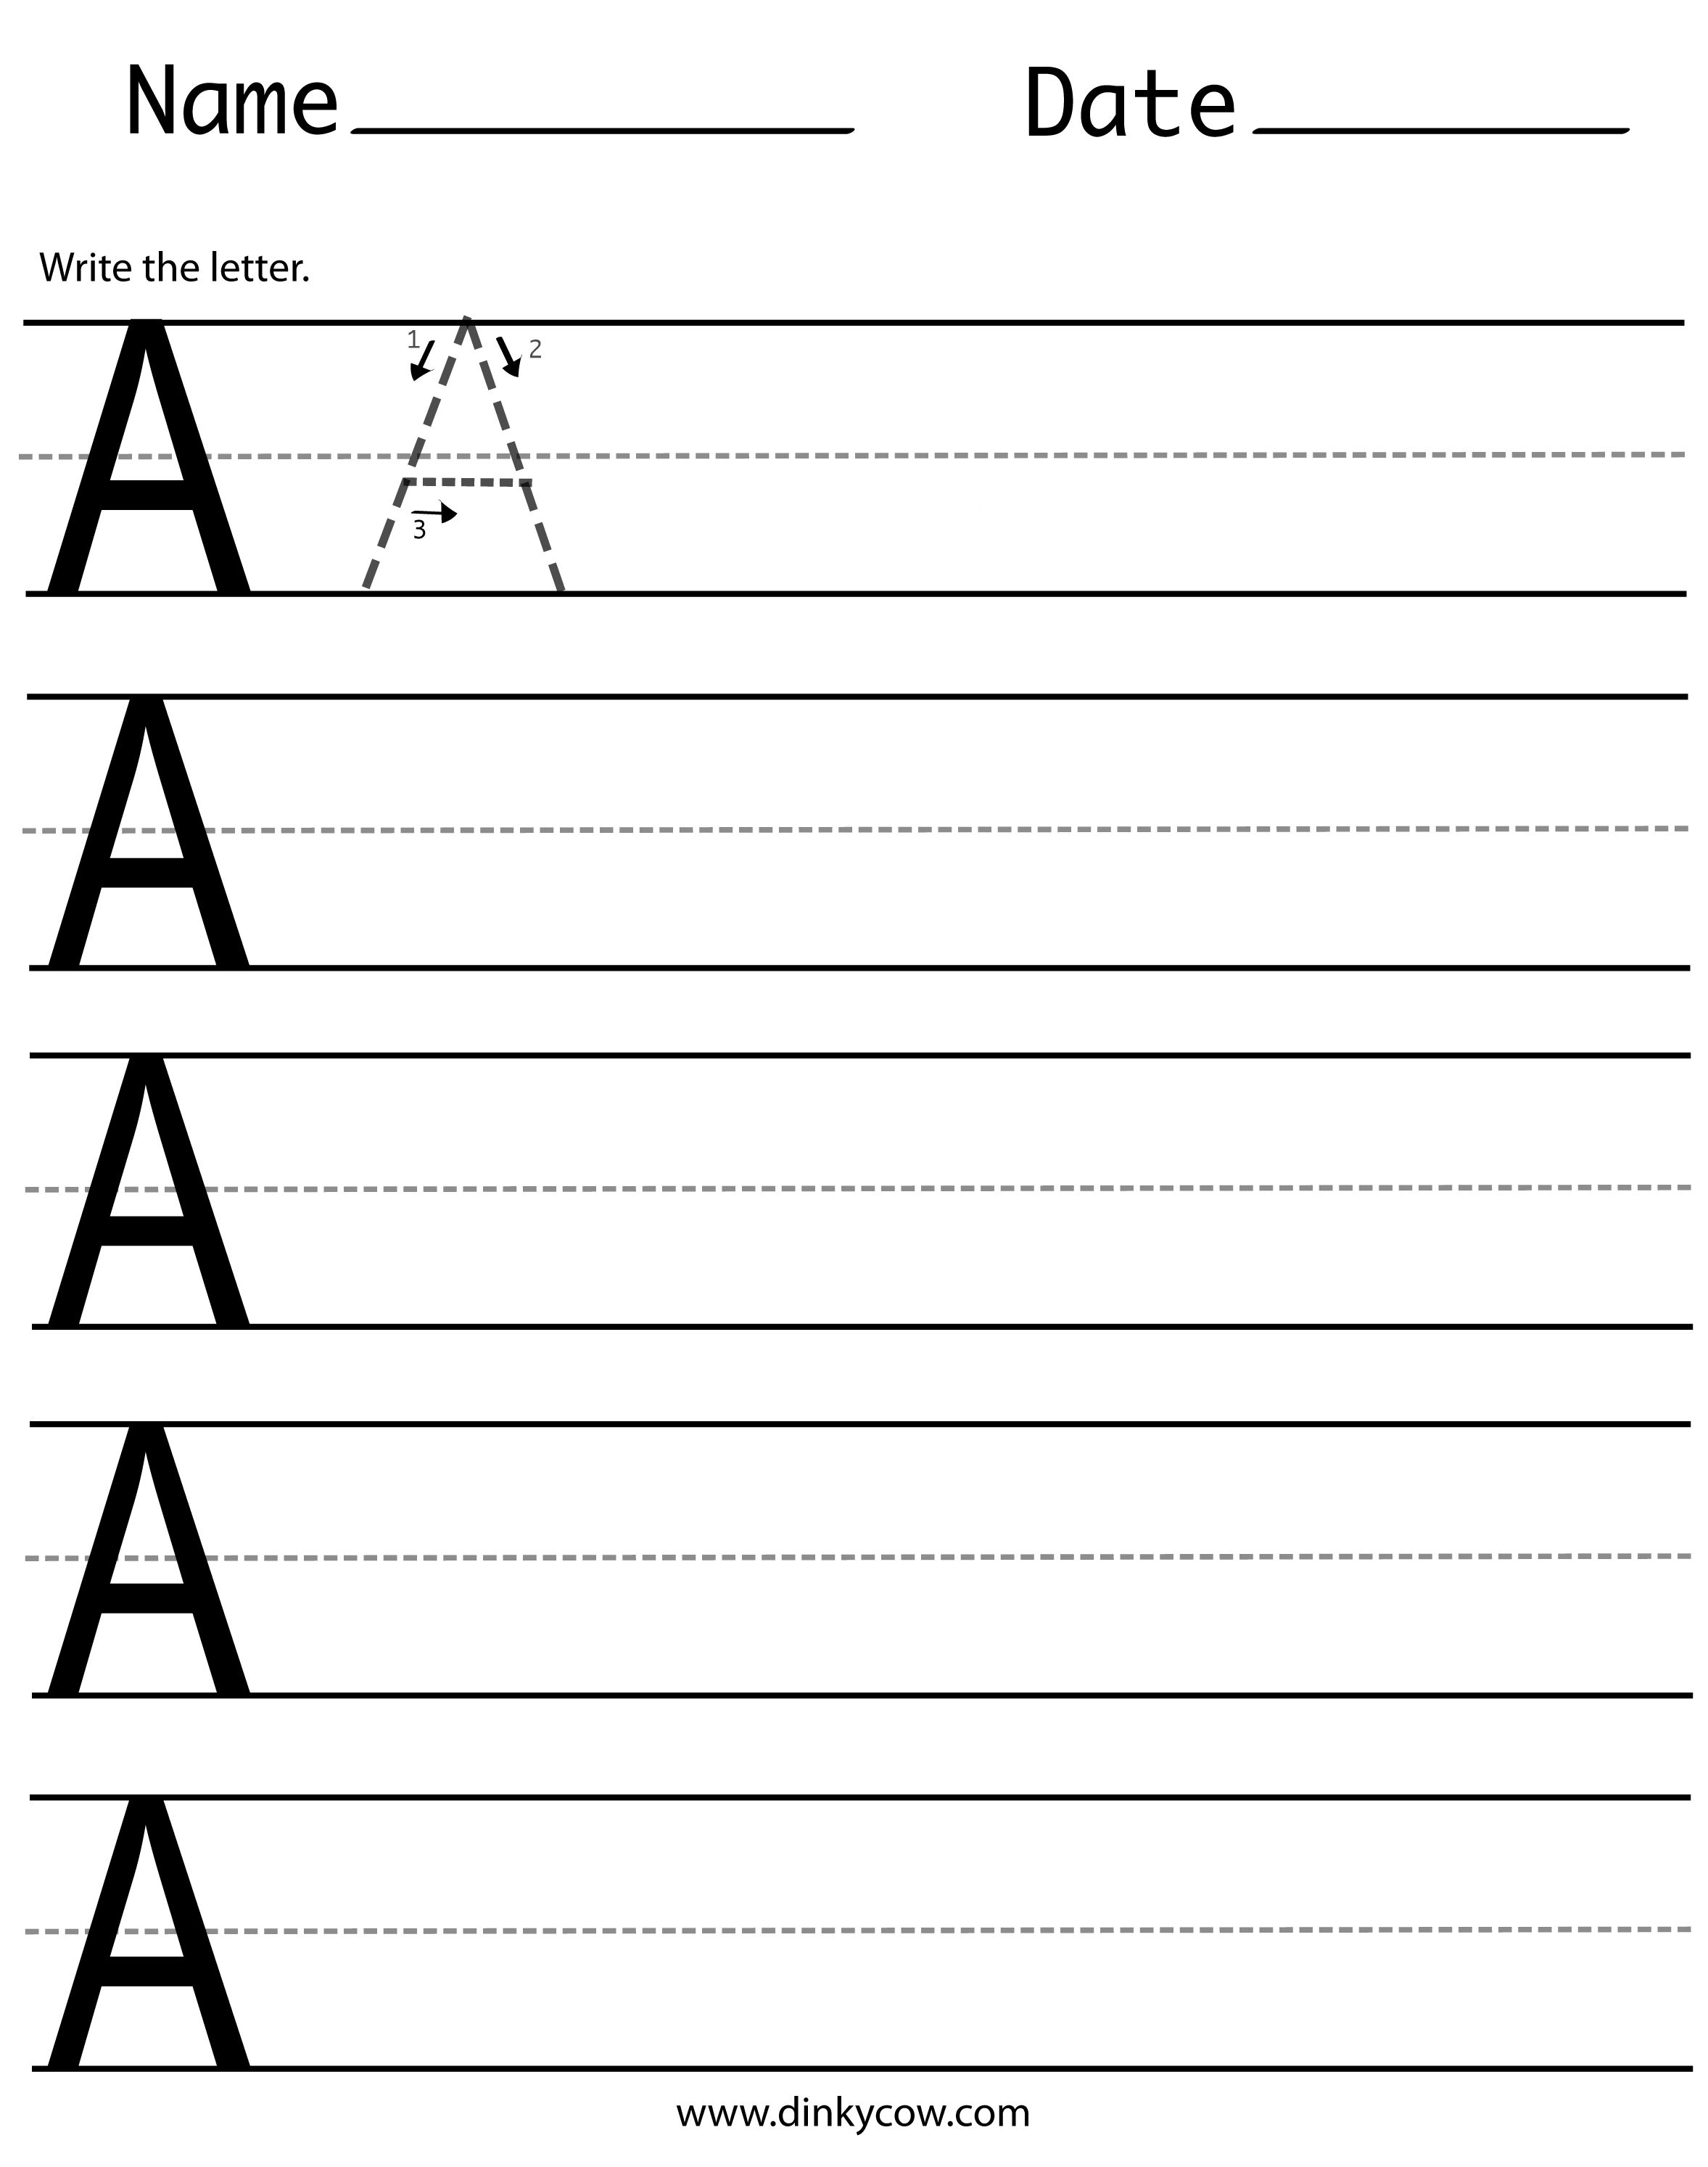 Printable Cursive Writing Worksheet For Middle School